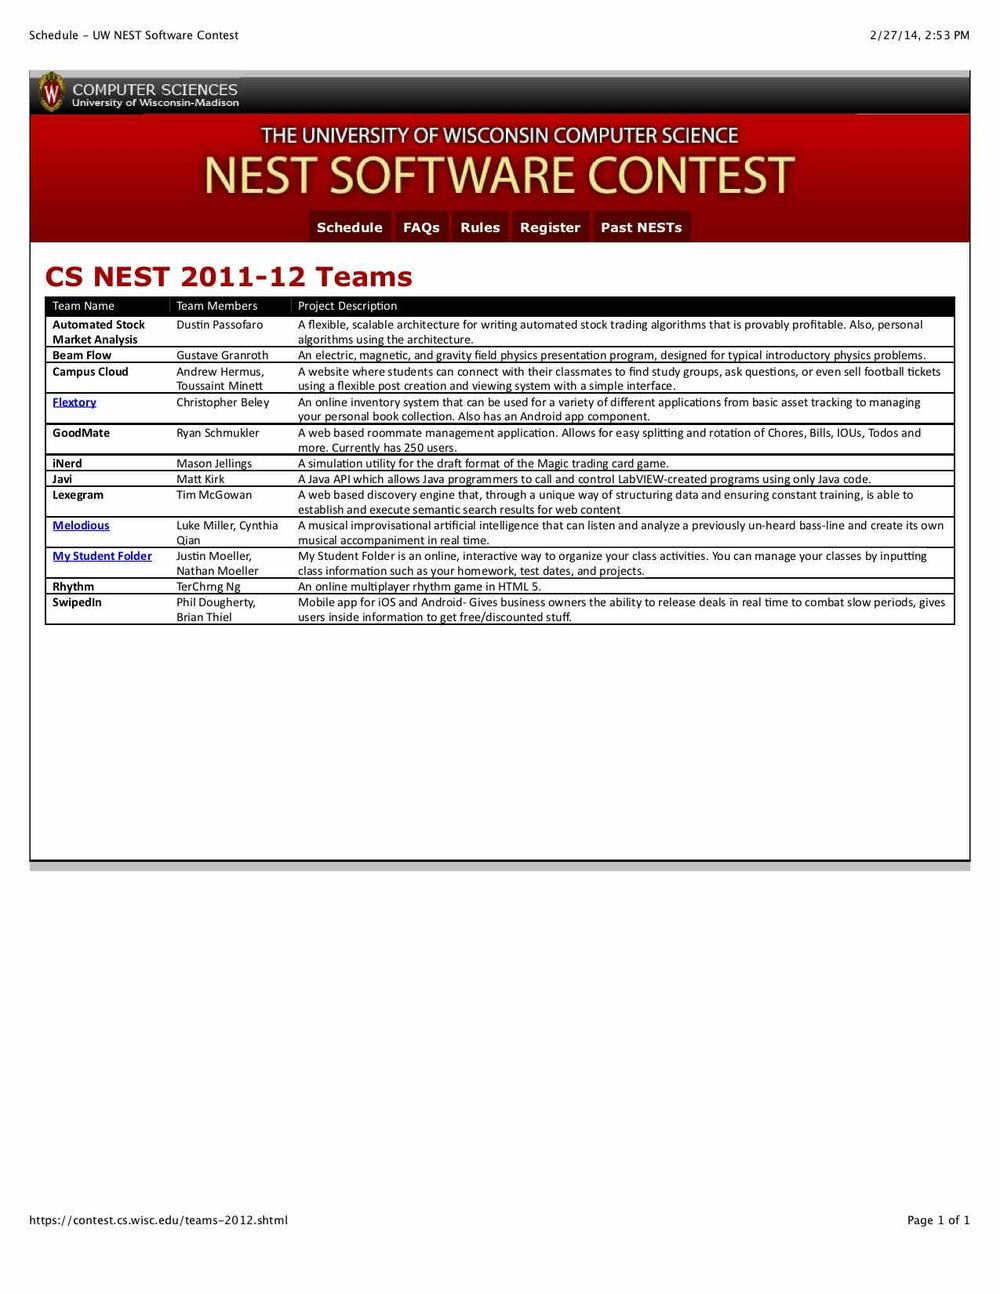 NEST_2011-12-Contestants.jpg